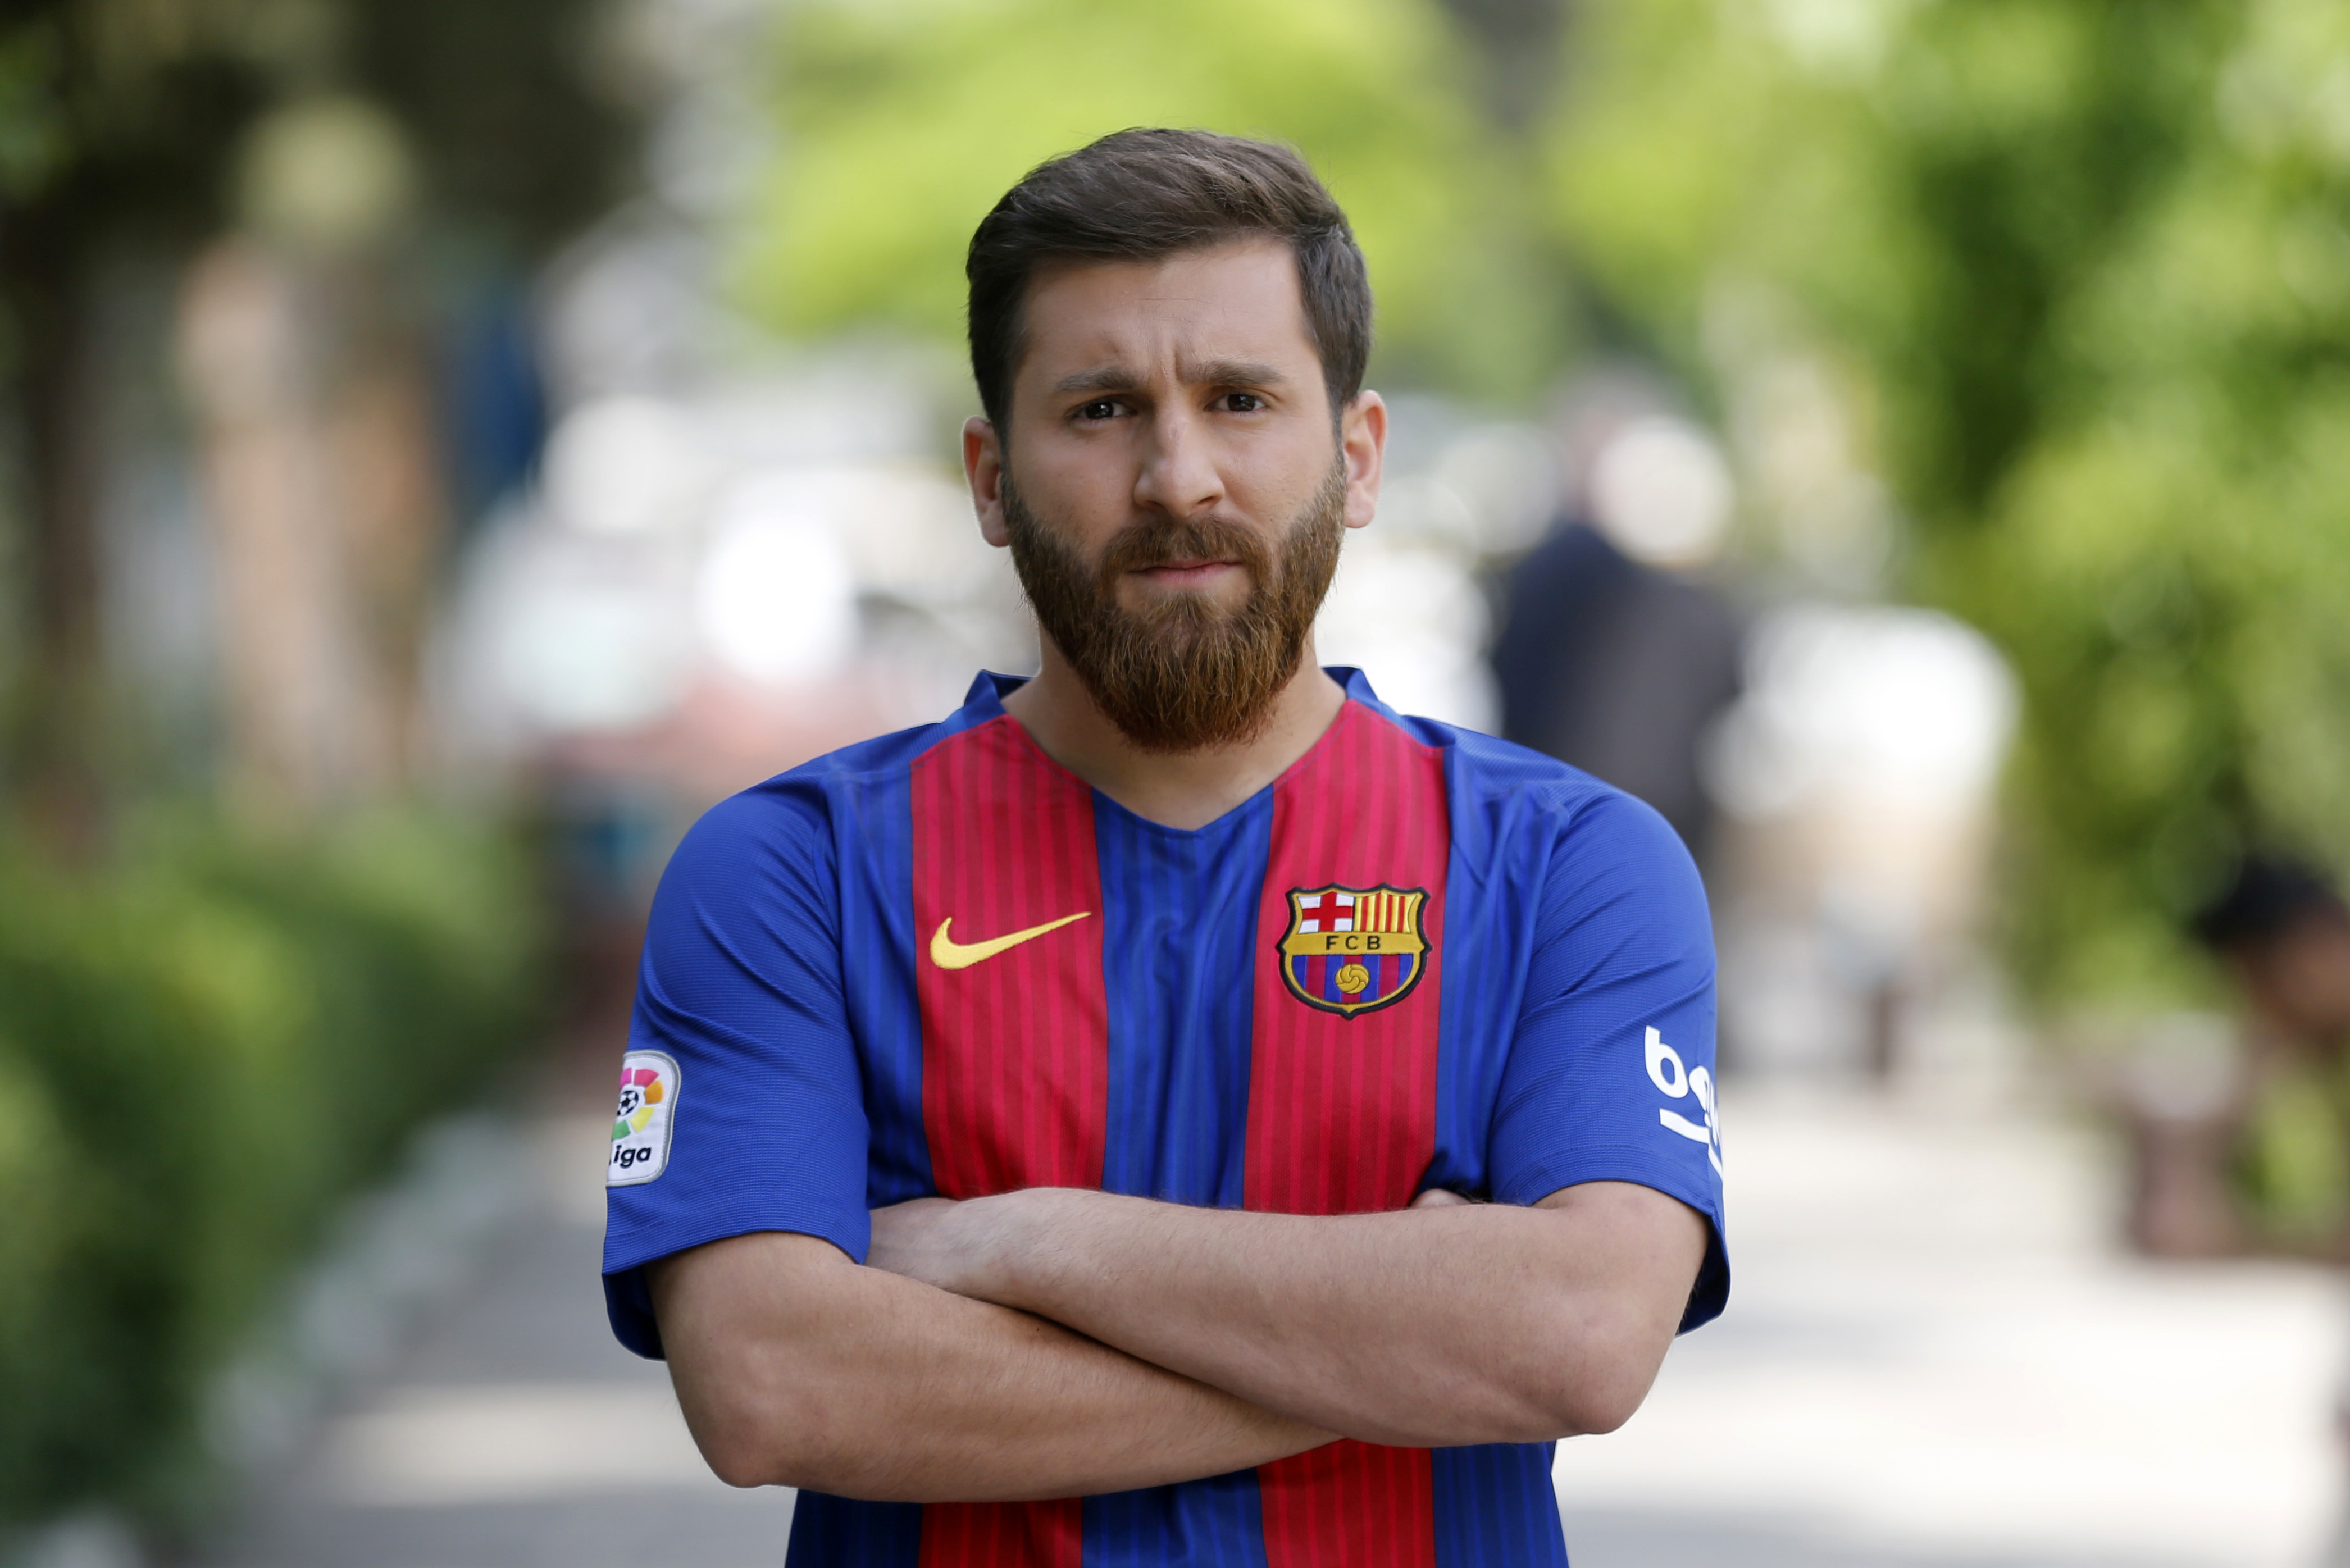 Guy Who Looks Exactly Like Lionel Messi Almost Arrested For Disrupting Public Order - 1